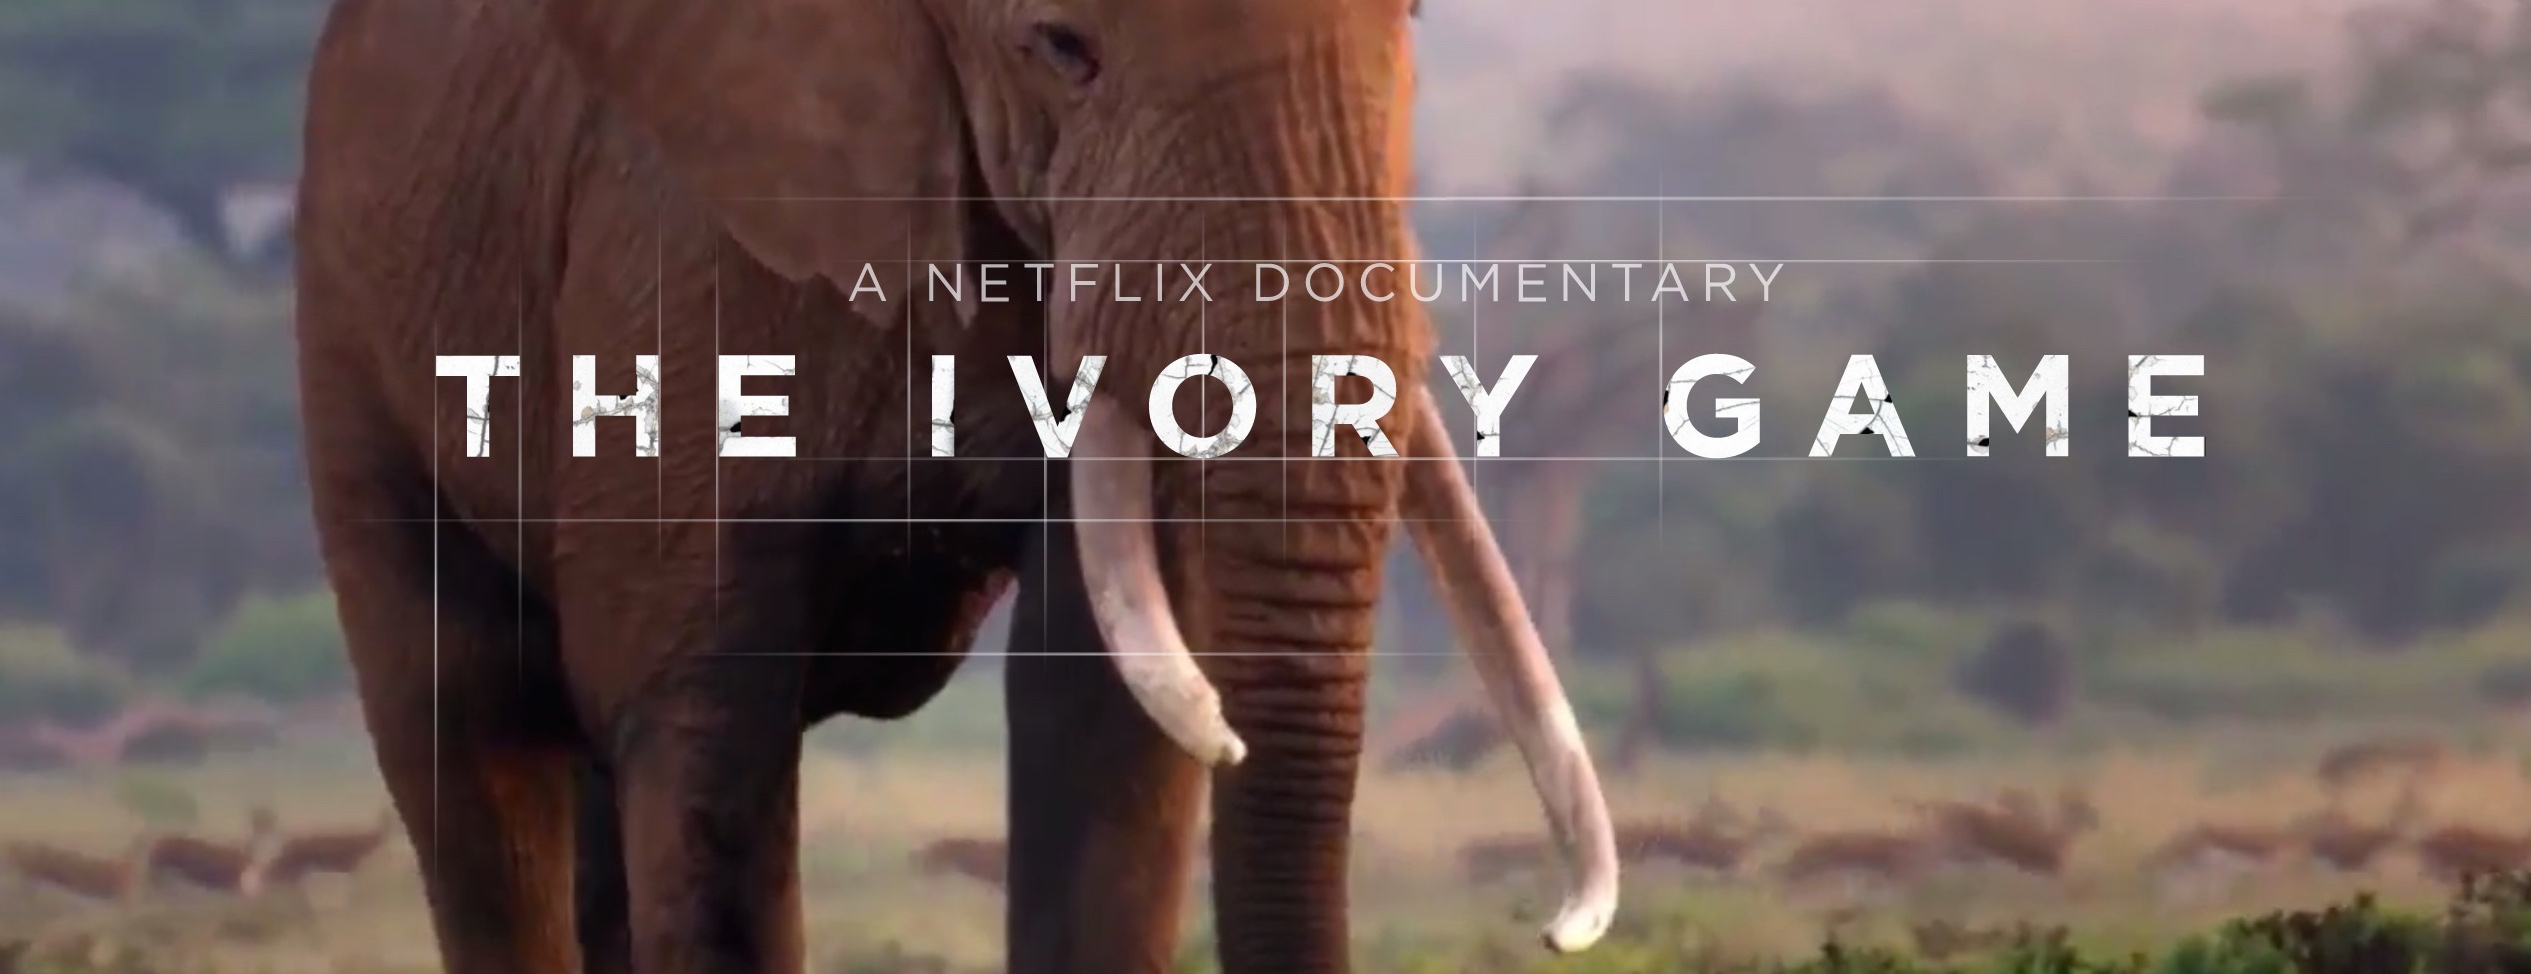 netflix-the-ivory-game